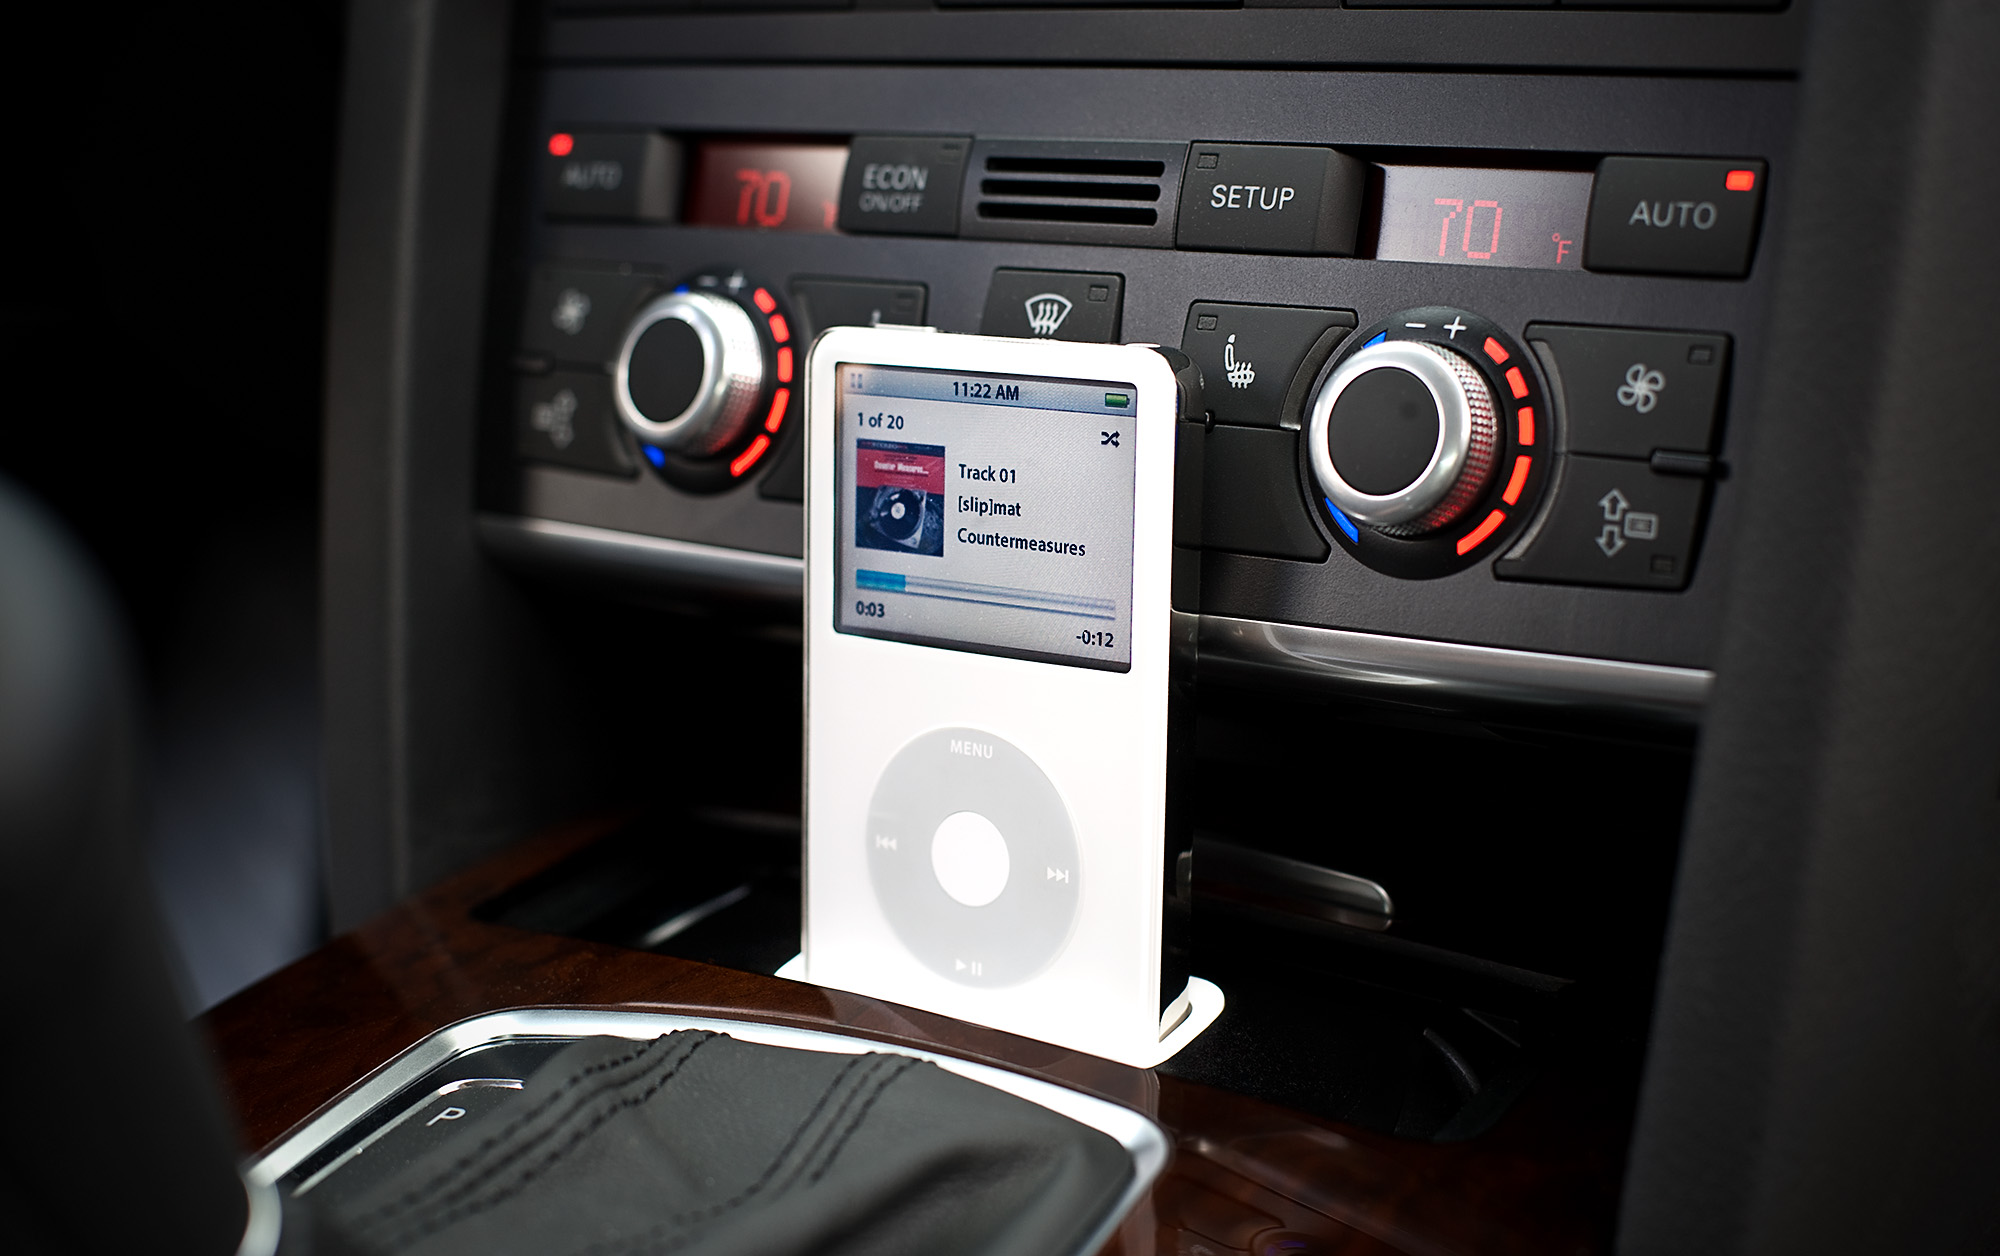 Bluetooth Xm Car Radio